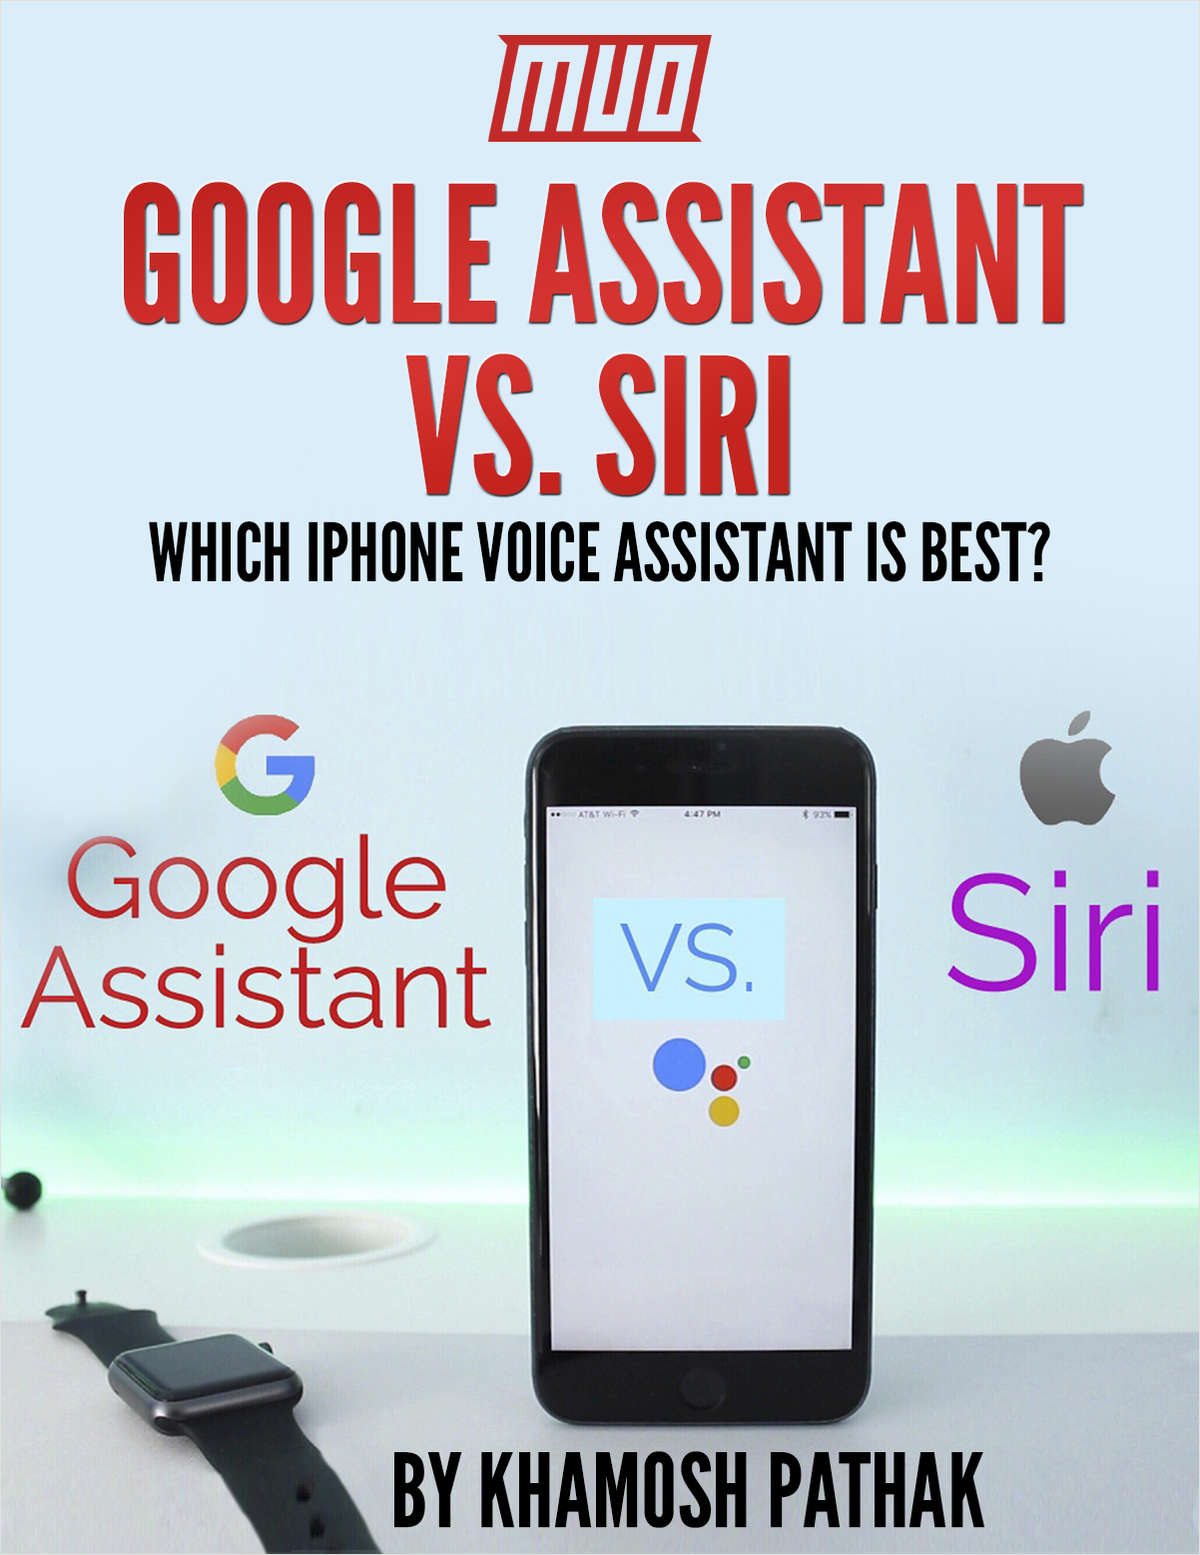 Google Assistant vs. Siri - Which iPhone Voice Assistant Is Best?